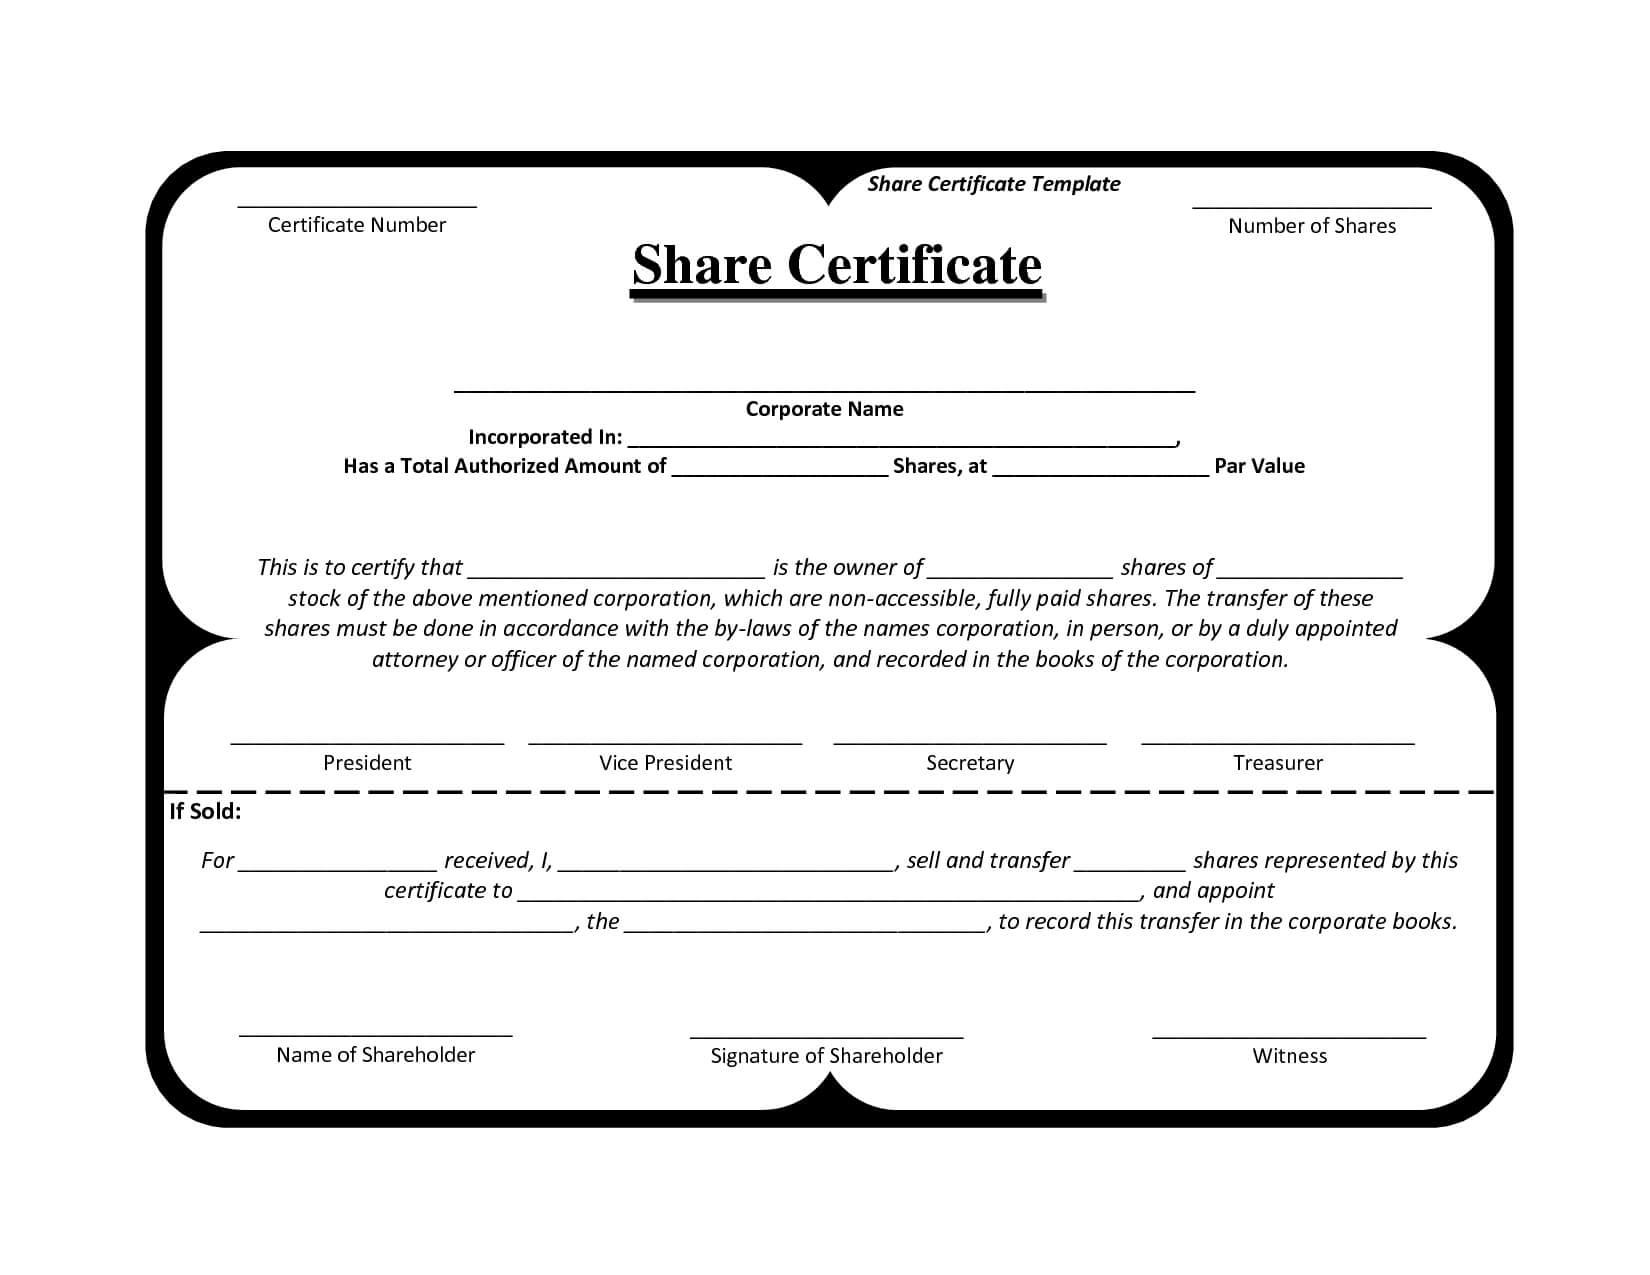 Template Share Certificate Rbscqi9V | Certificate Templates For Template For Share Certificate